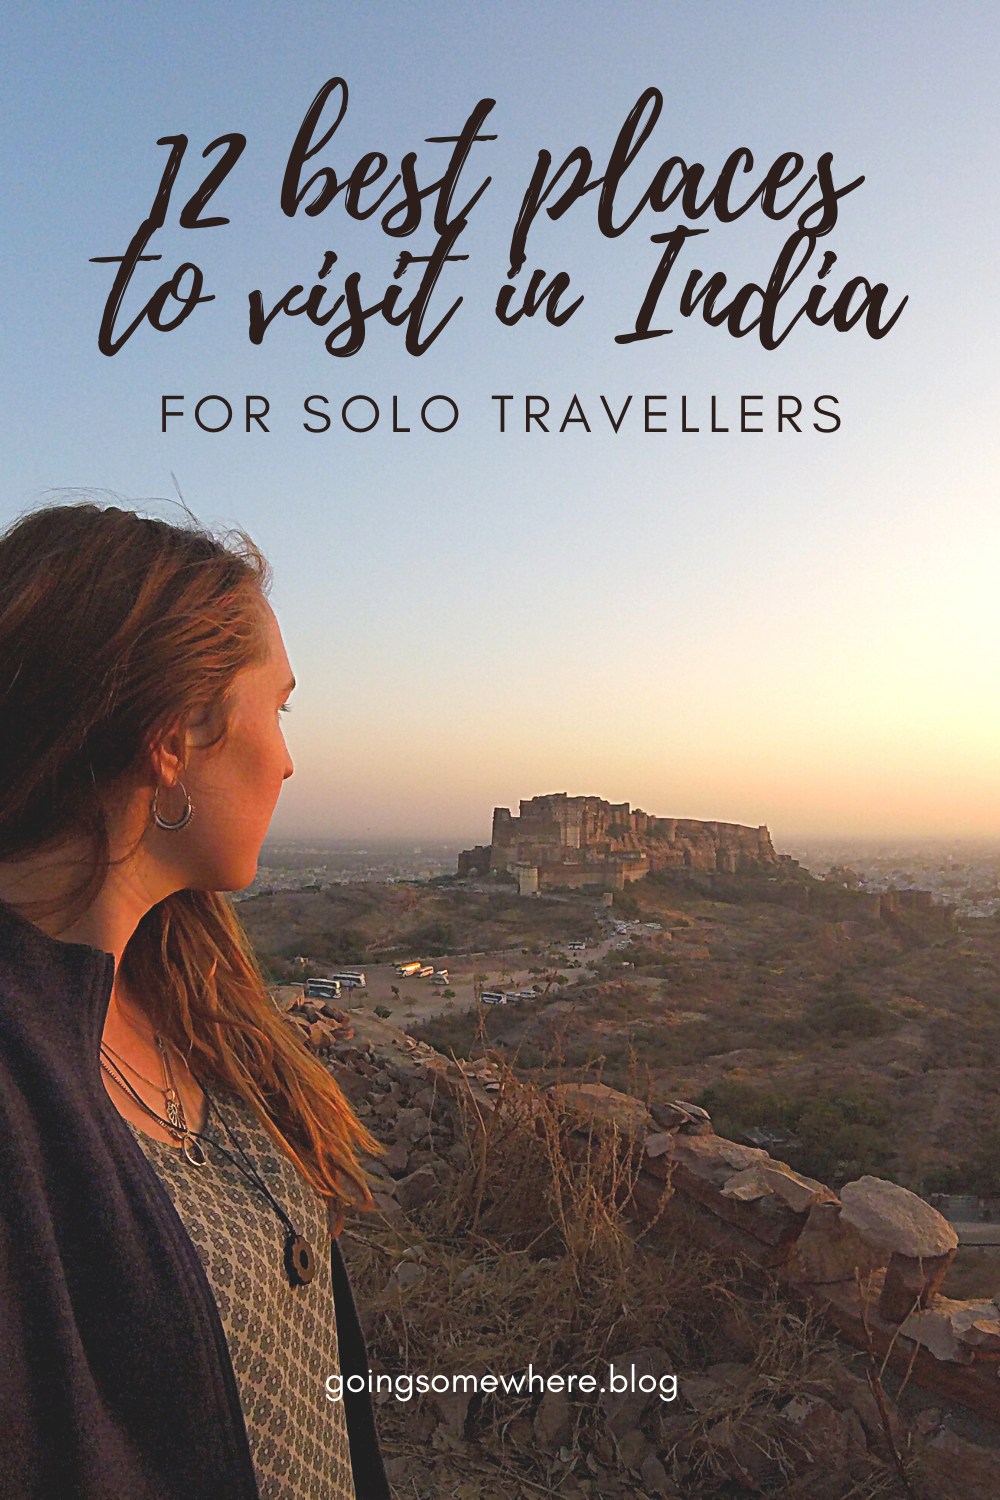 12 Best Places To Visit In India For Solo Travellers In 2020 Solo Travel Travel Destinations Asia Cool Places To Visit